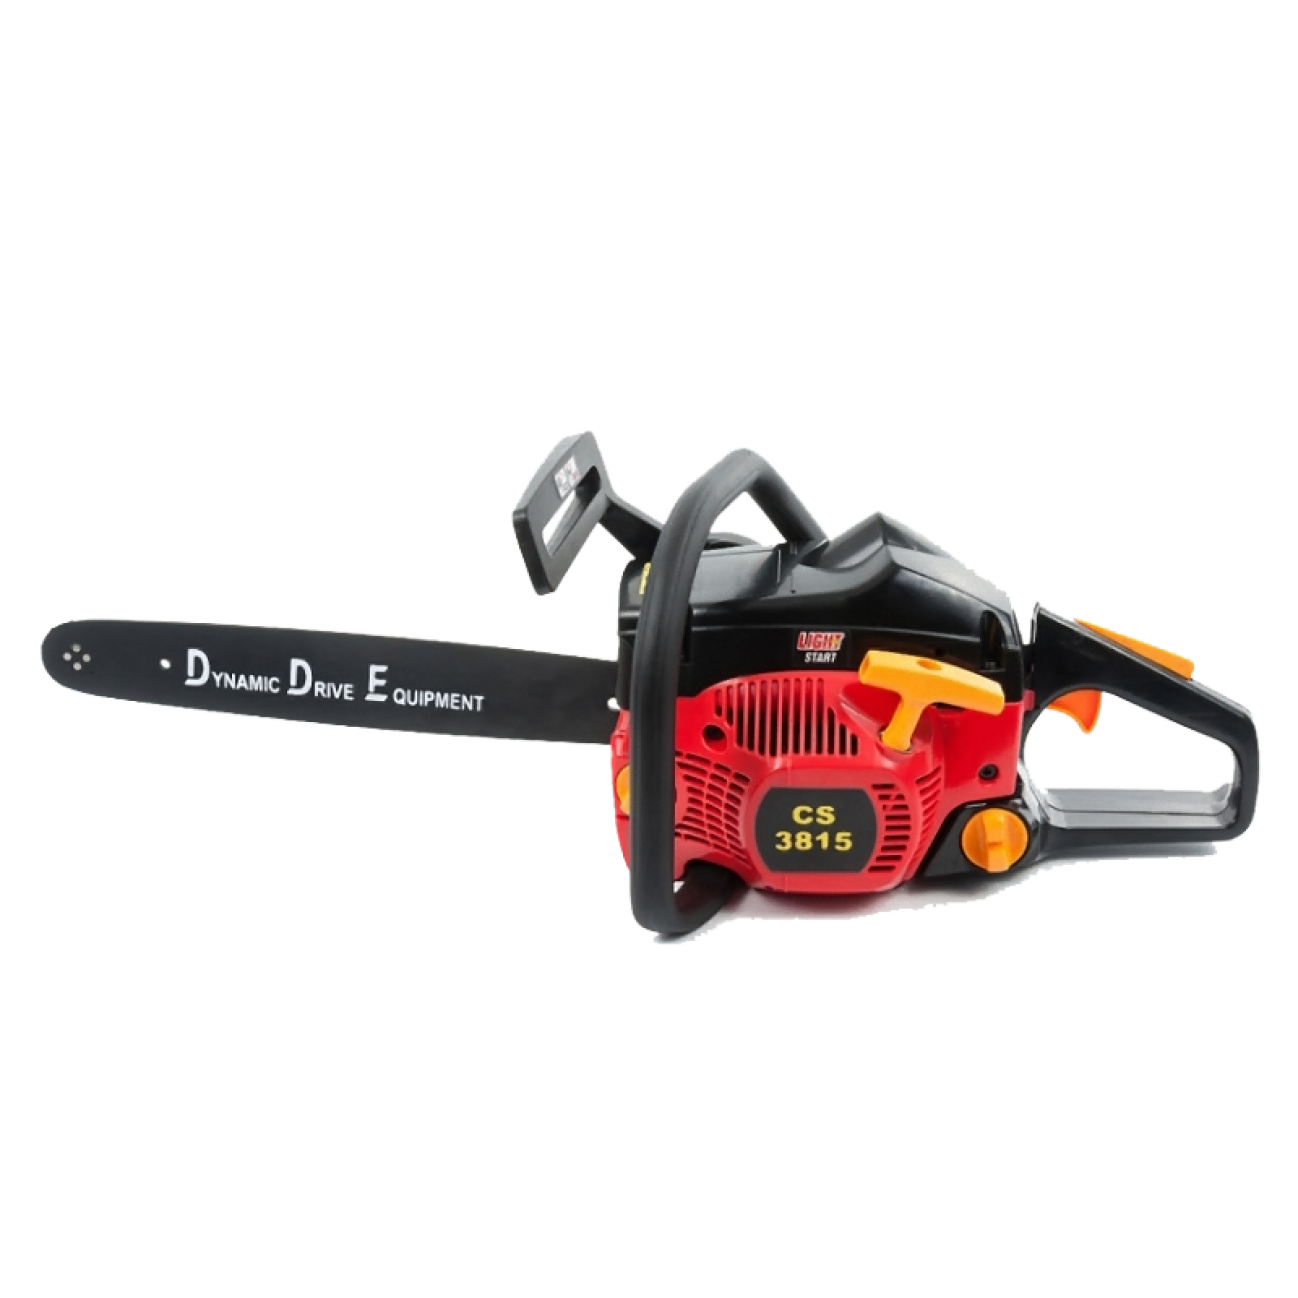 Chainsaw clipart transparent background. Png